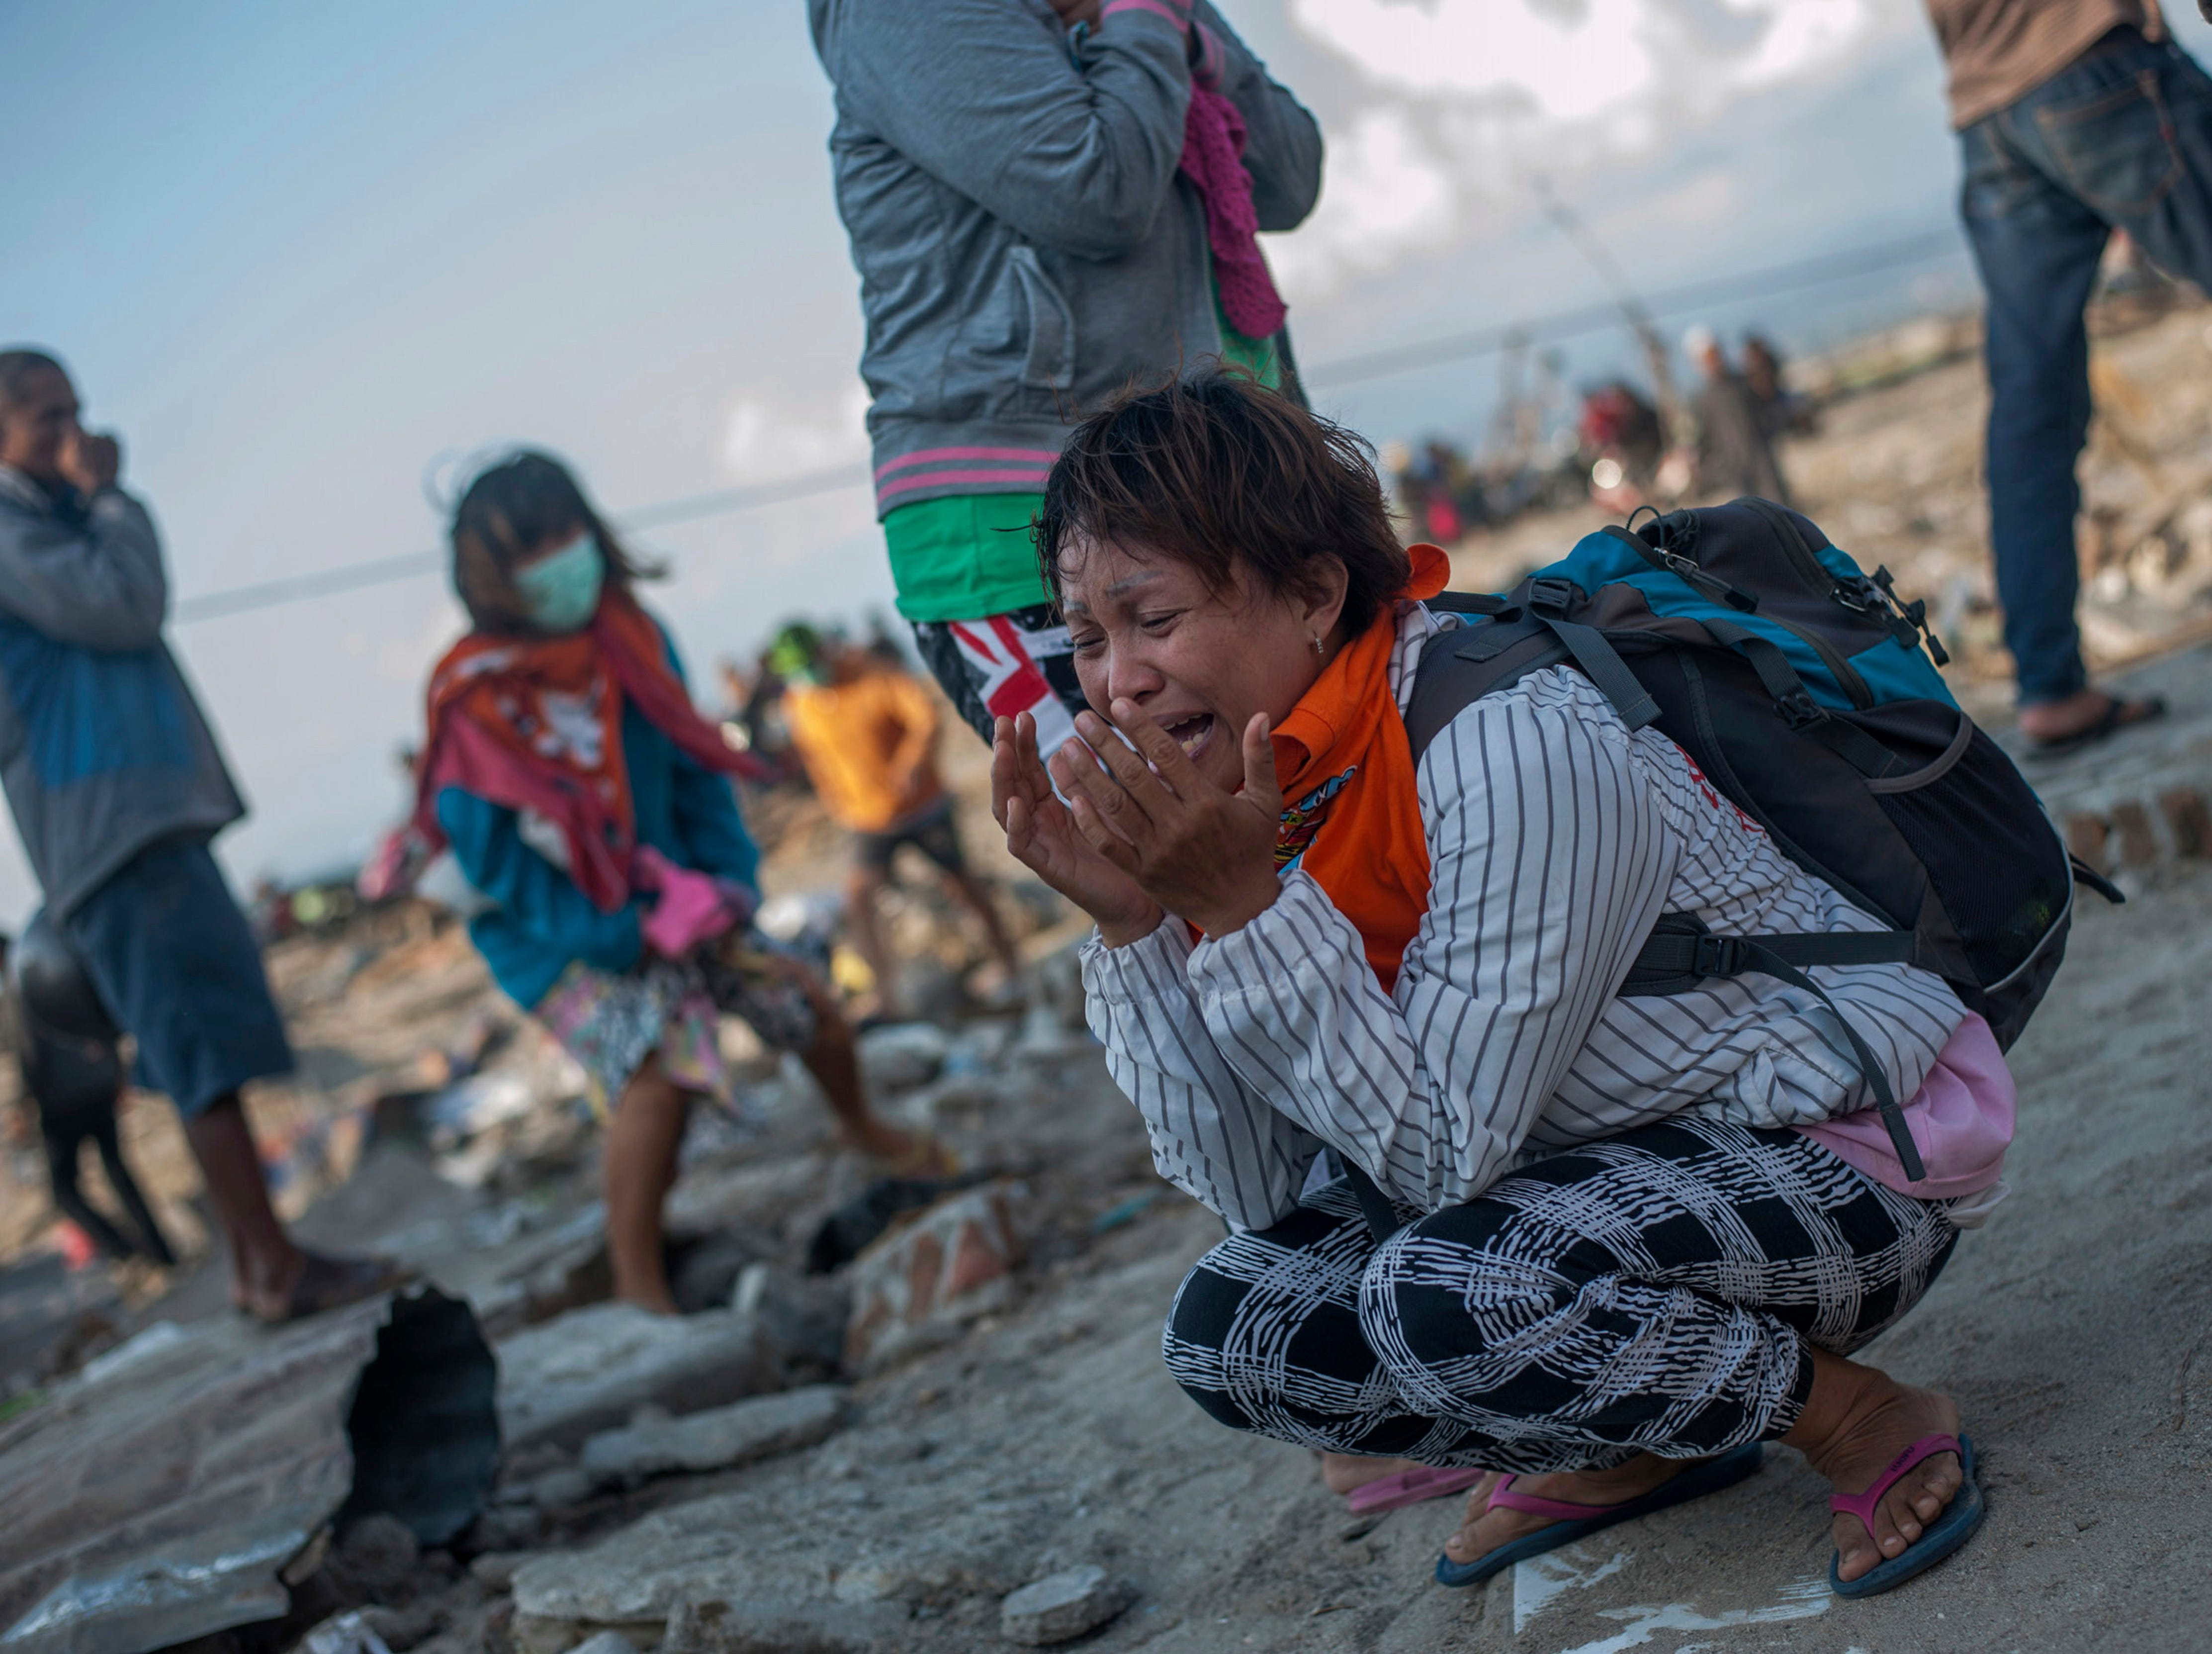 Residents react as rescuers recover the body of a tsunami victim in Palu, Central Sulawesi, Indonesia, Wednesday, Oct. 3, 2018.